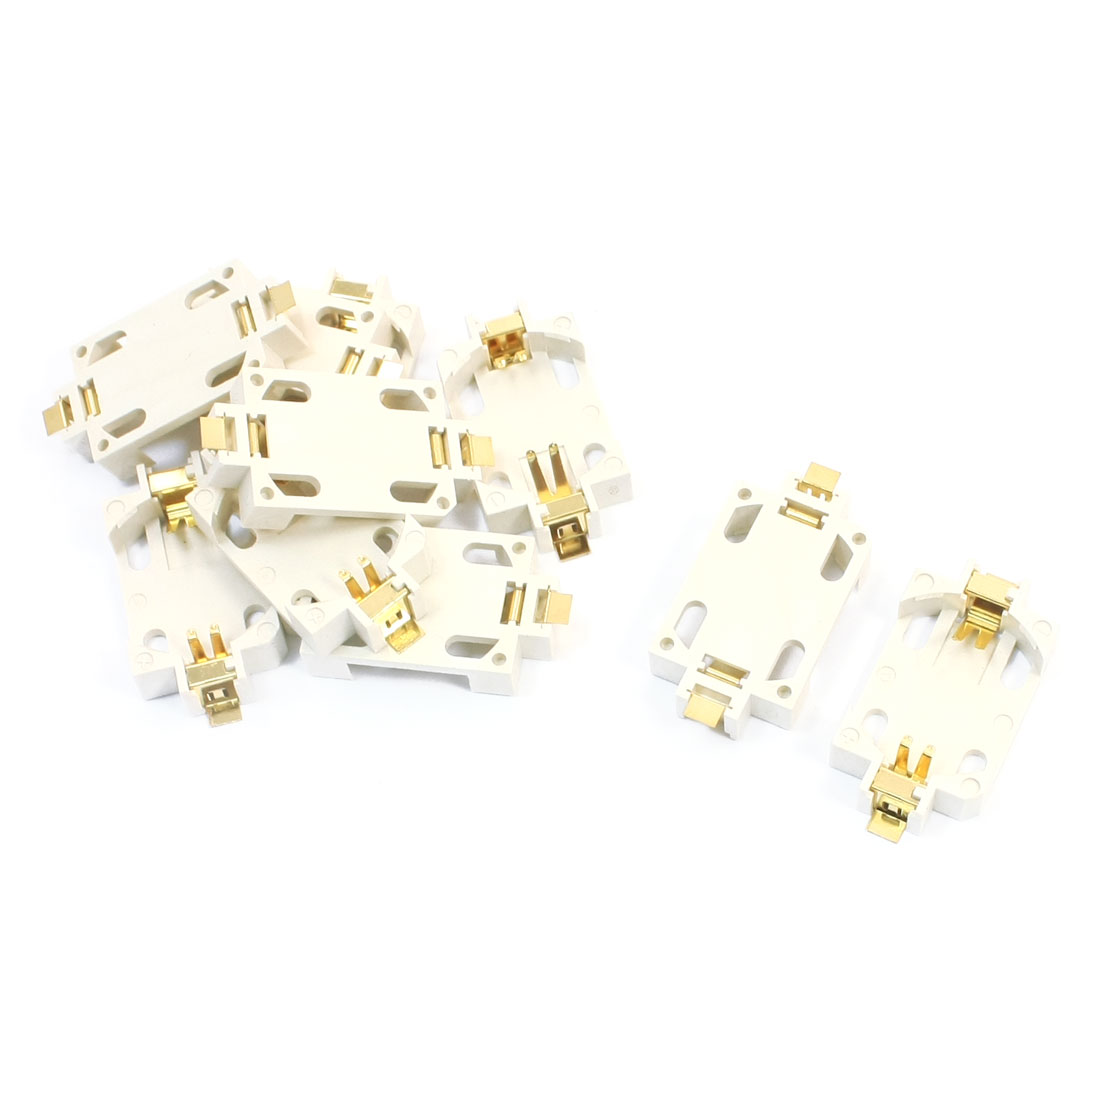 10pcs White Plastic Shell SMD SMT Type CR2032 Coin Cell Button Battery Holder Socket Case Container